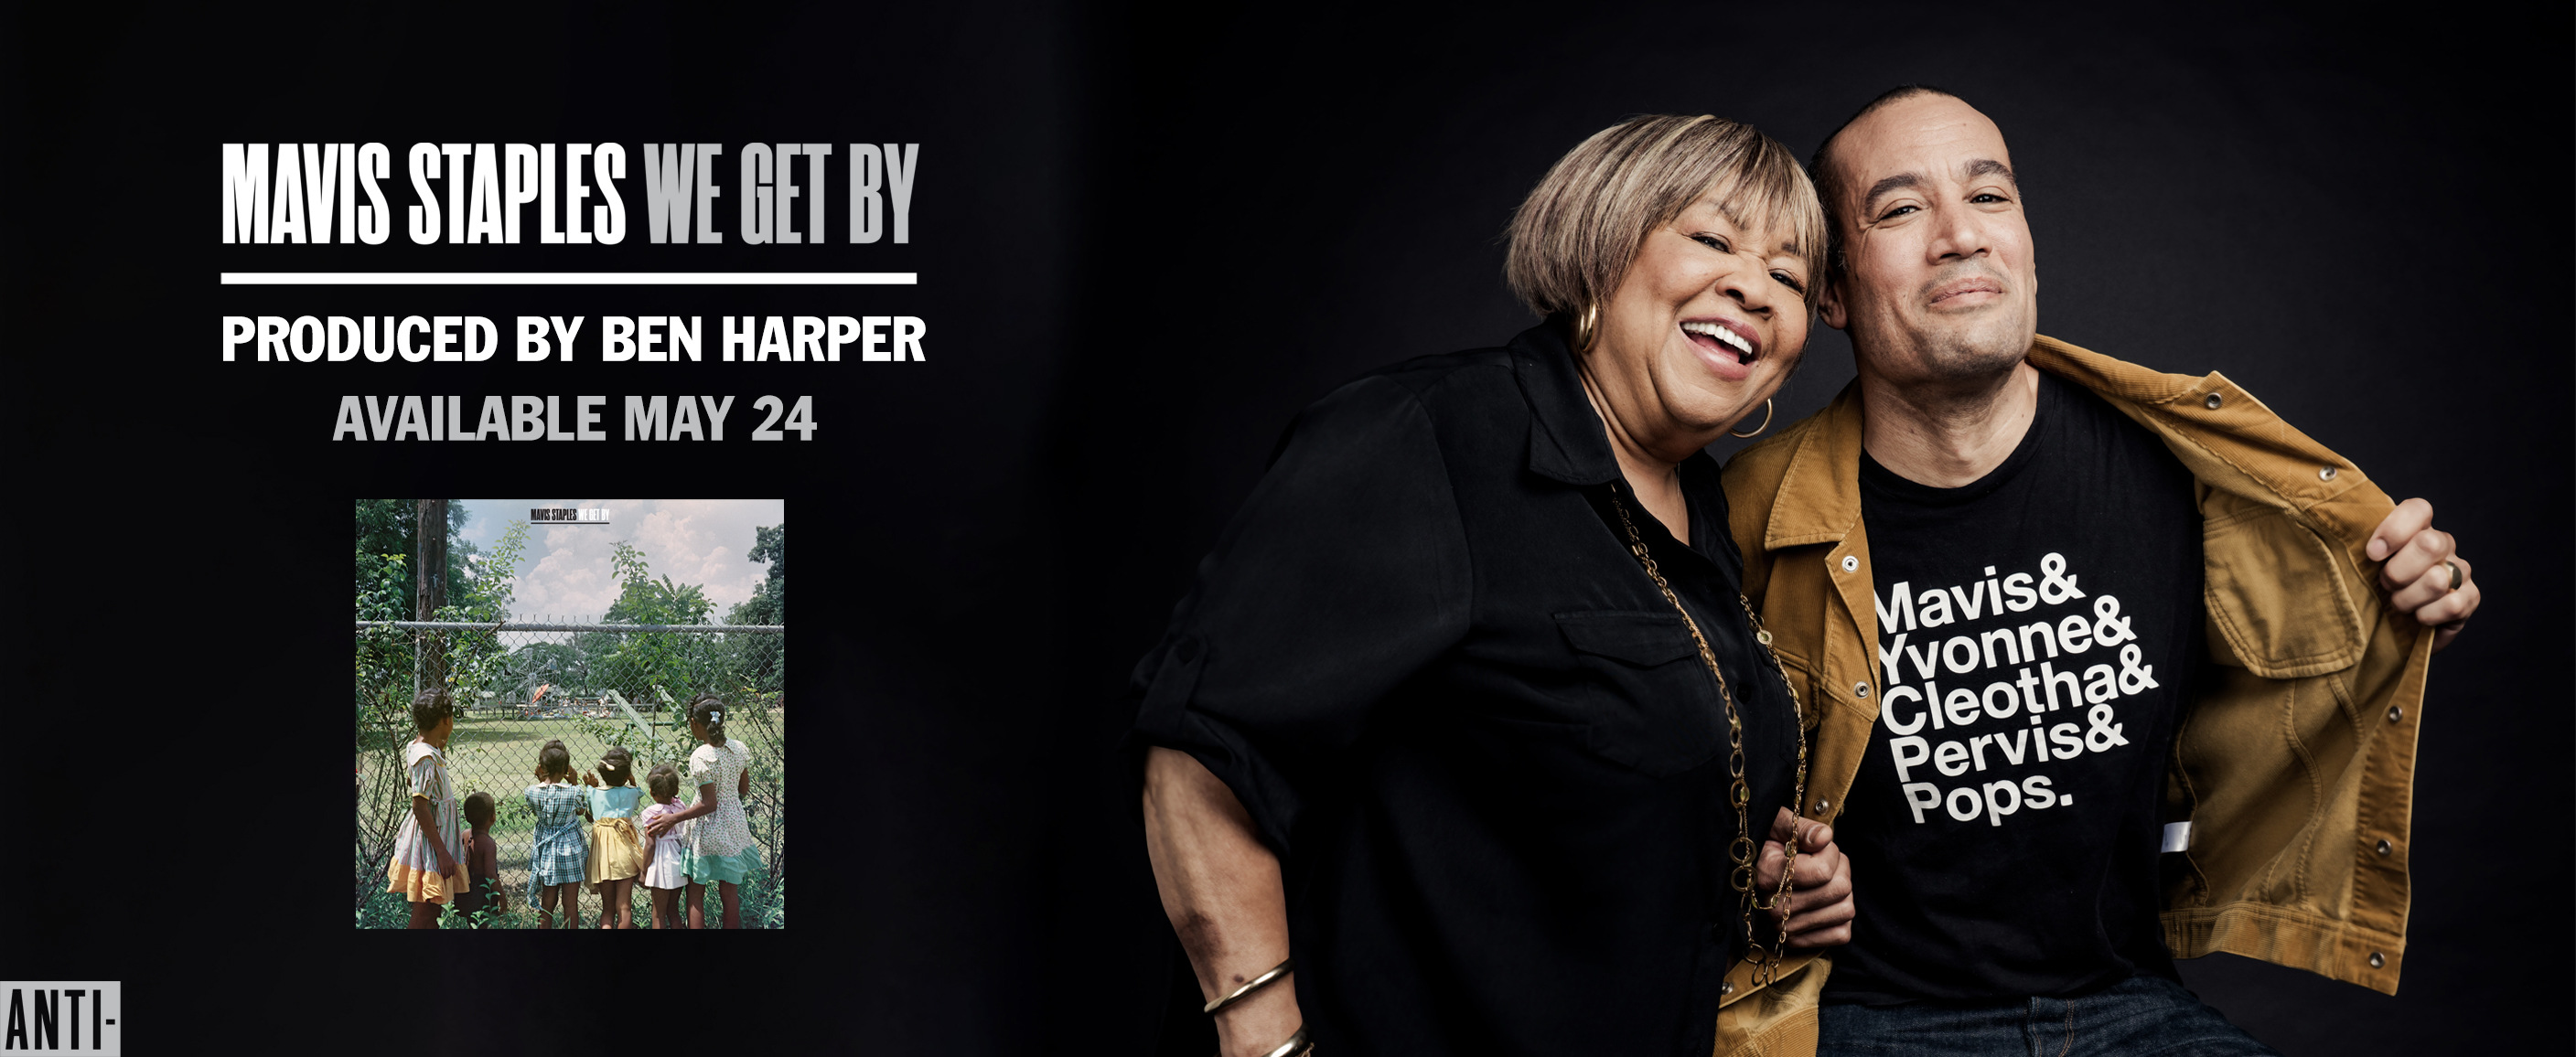 Mavis Staples - We Get By - Produced by Ben Harper - Available May 24